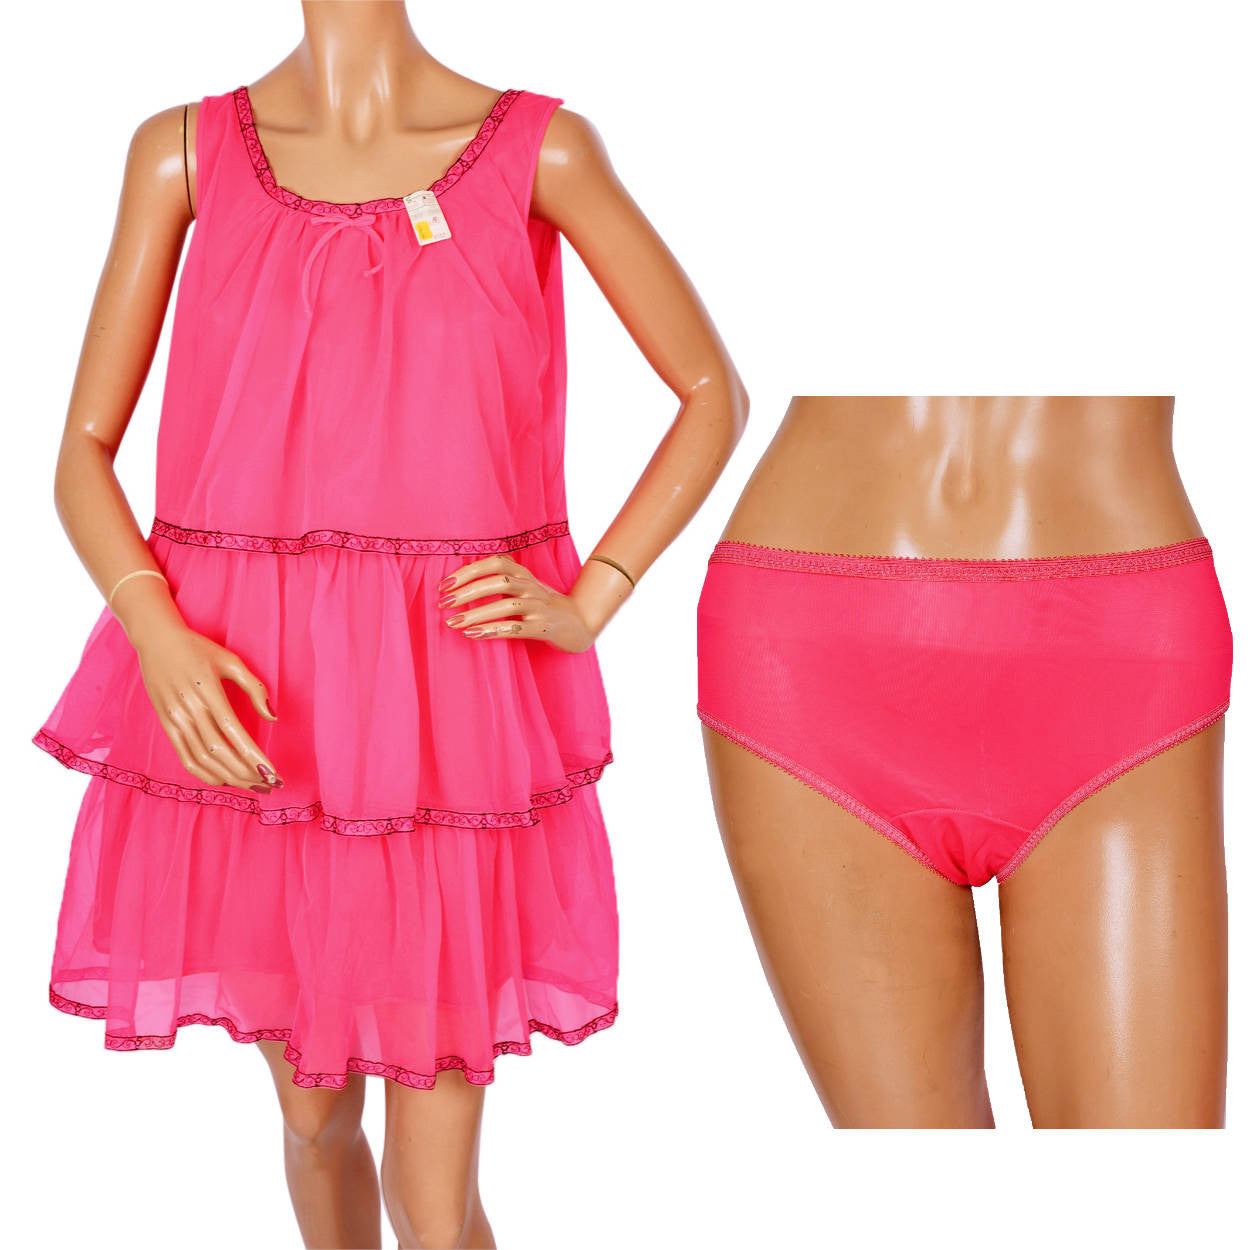 6fb2c9da2d7 Vintage 1960s Shocking Pink Nylon Ruffled Nightgown with Matching Panties -  New Old Stock - S